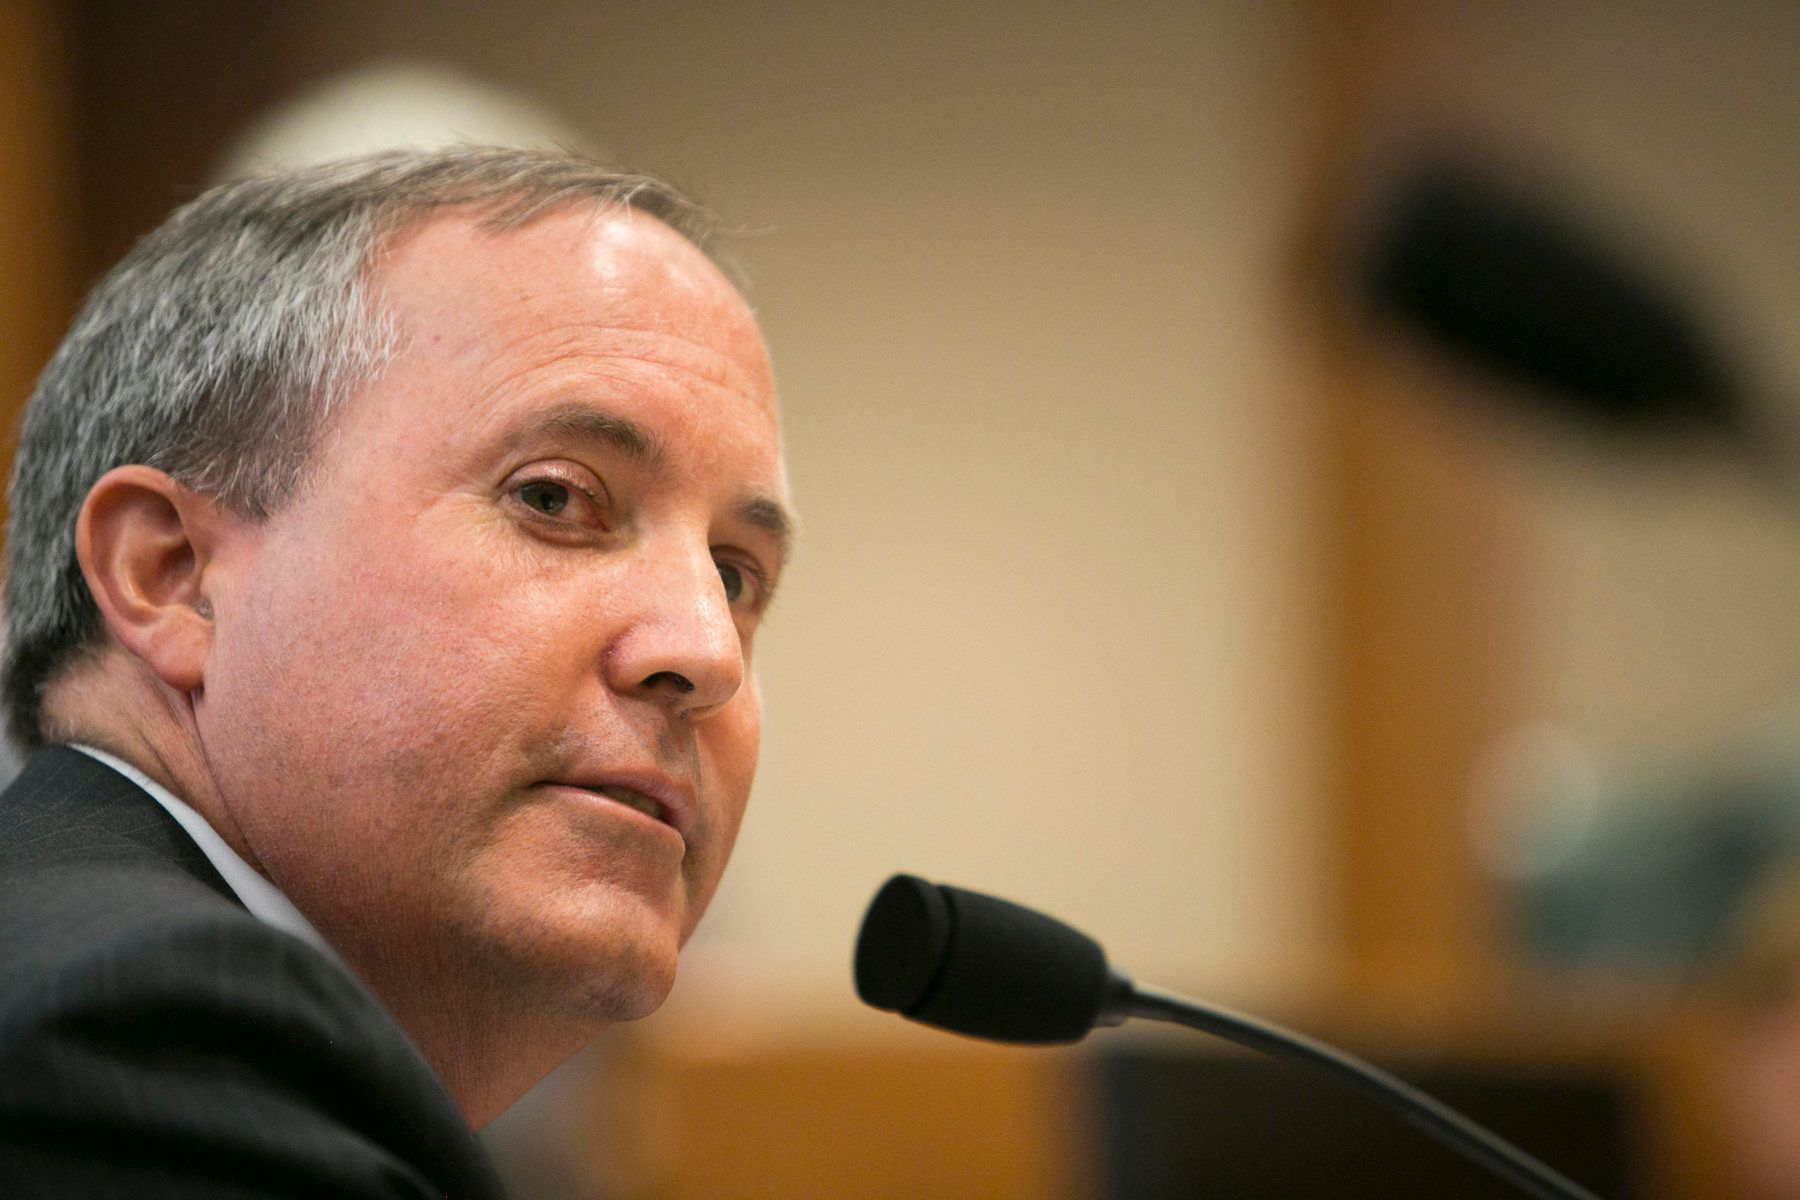 Texas Attorney General Ken Paxton had called the list evidence of serious voter fraud.